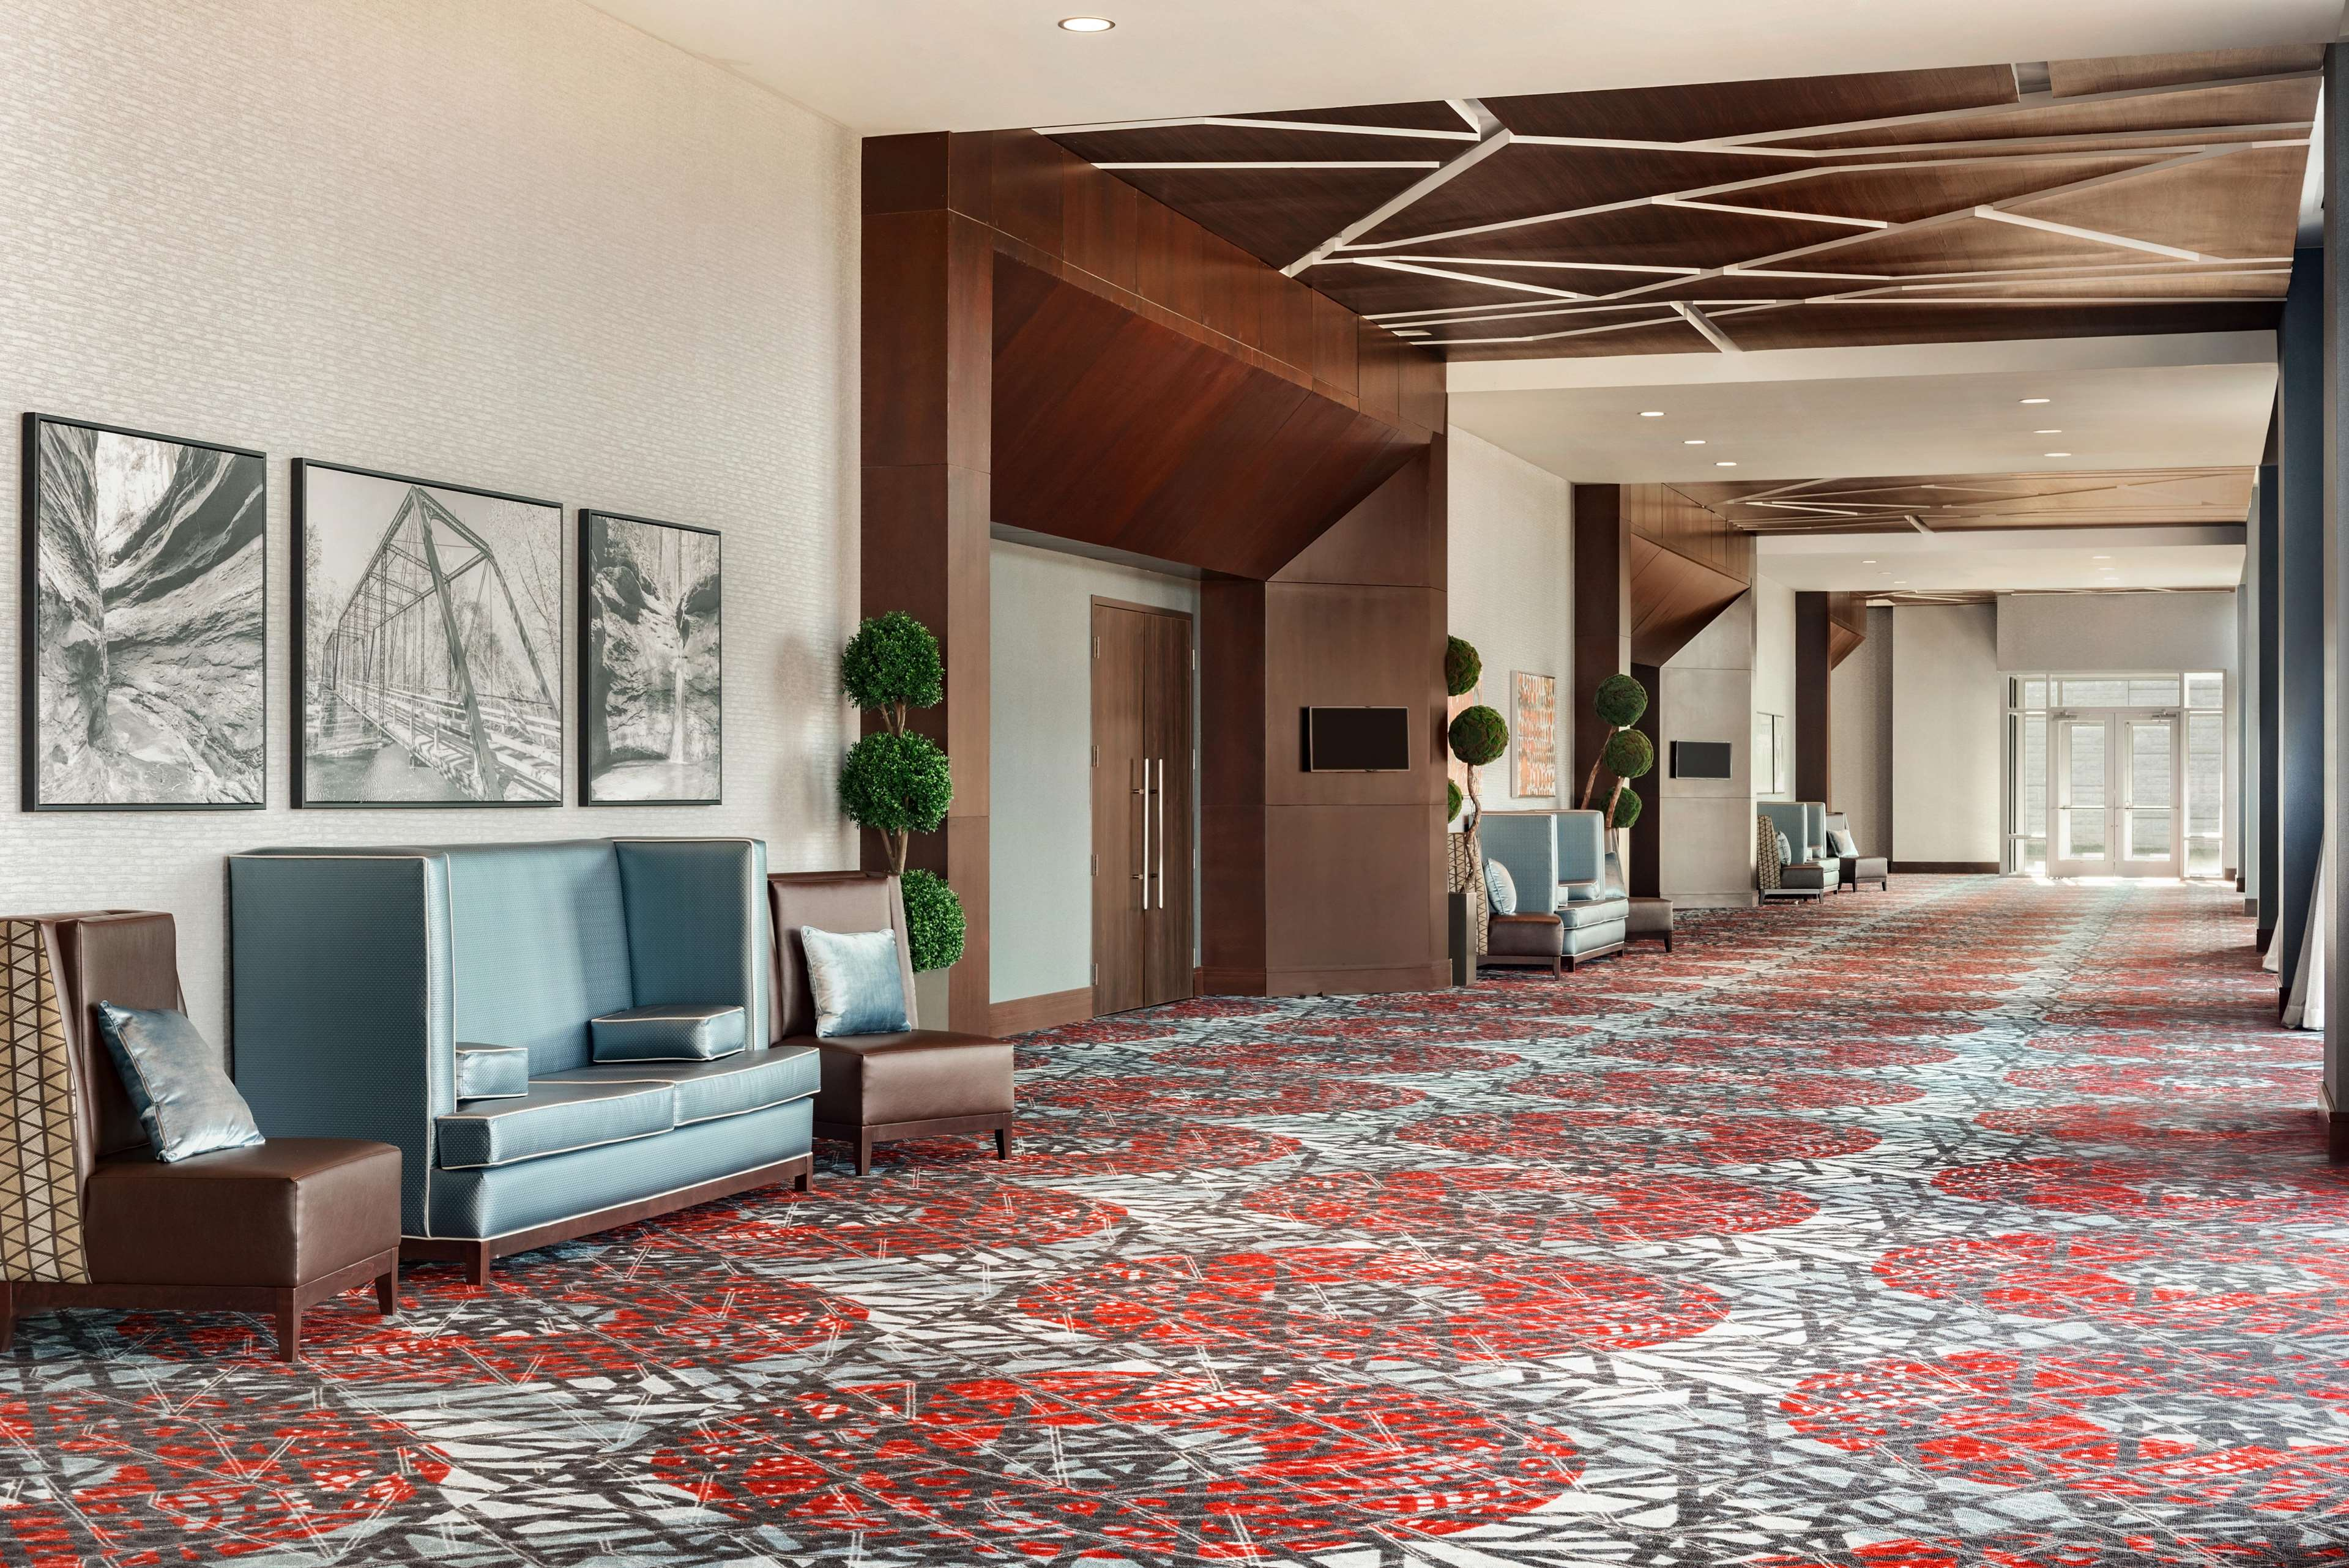 Embassy Suites by Hilton Noblesville Indianapolis Conference Center image 31